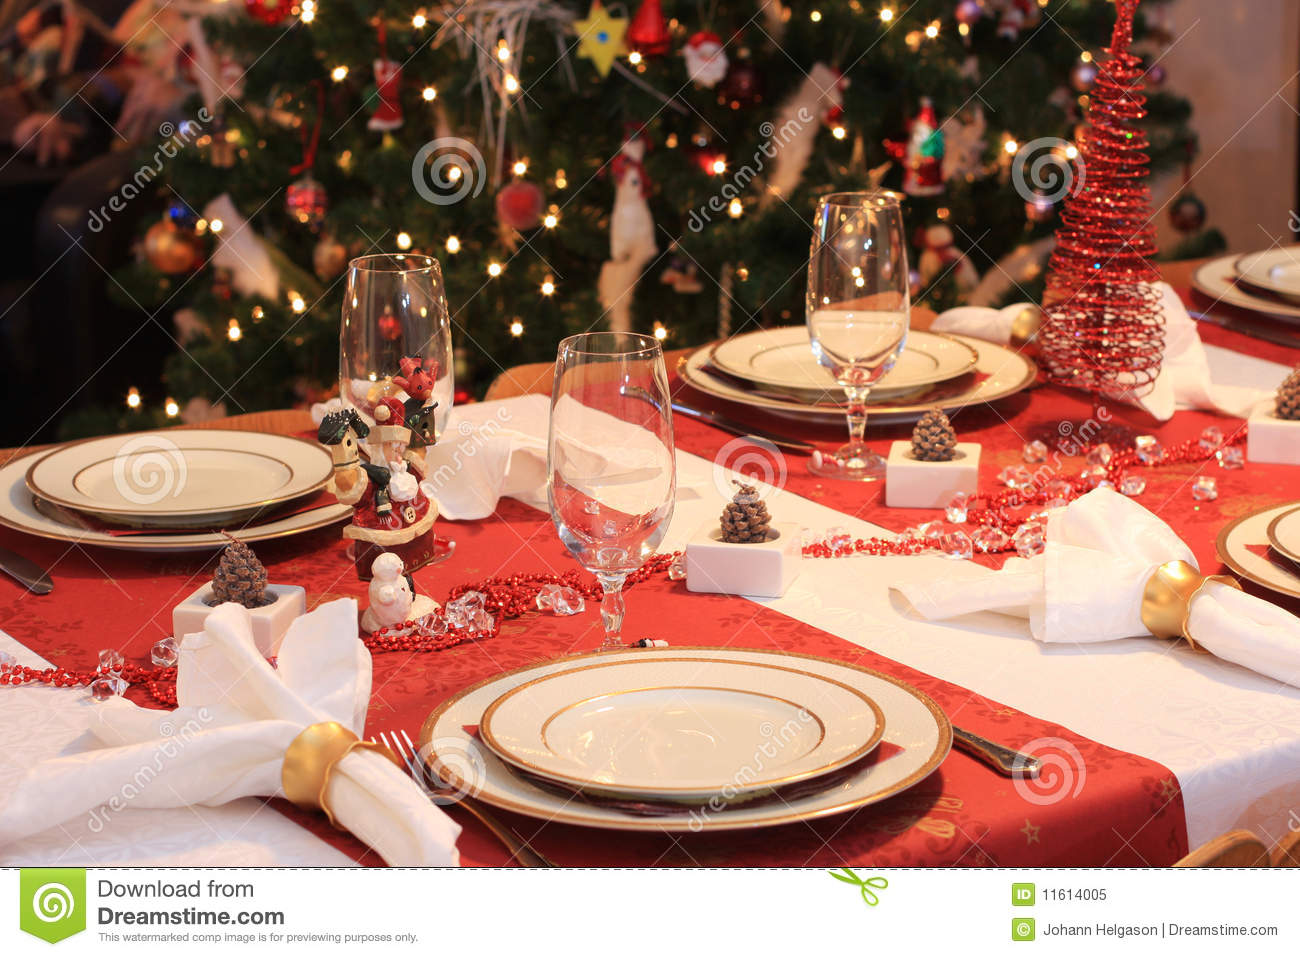 How To Set A Dinner Table christmas dinner table royalty free stock photo - image: 11614005